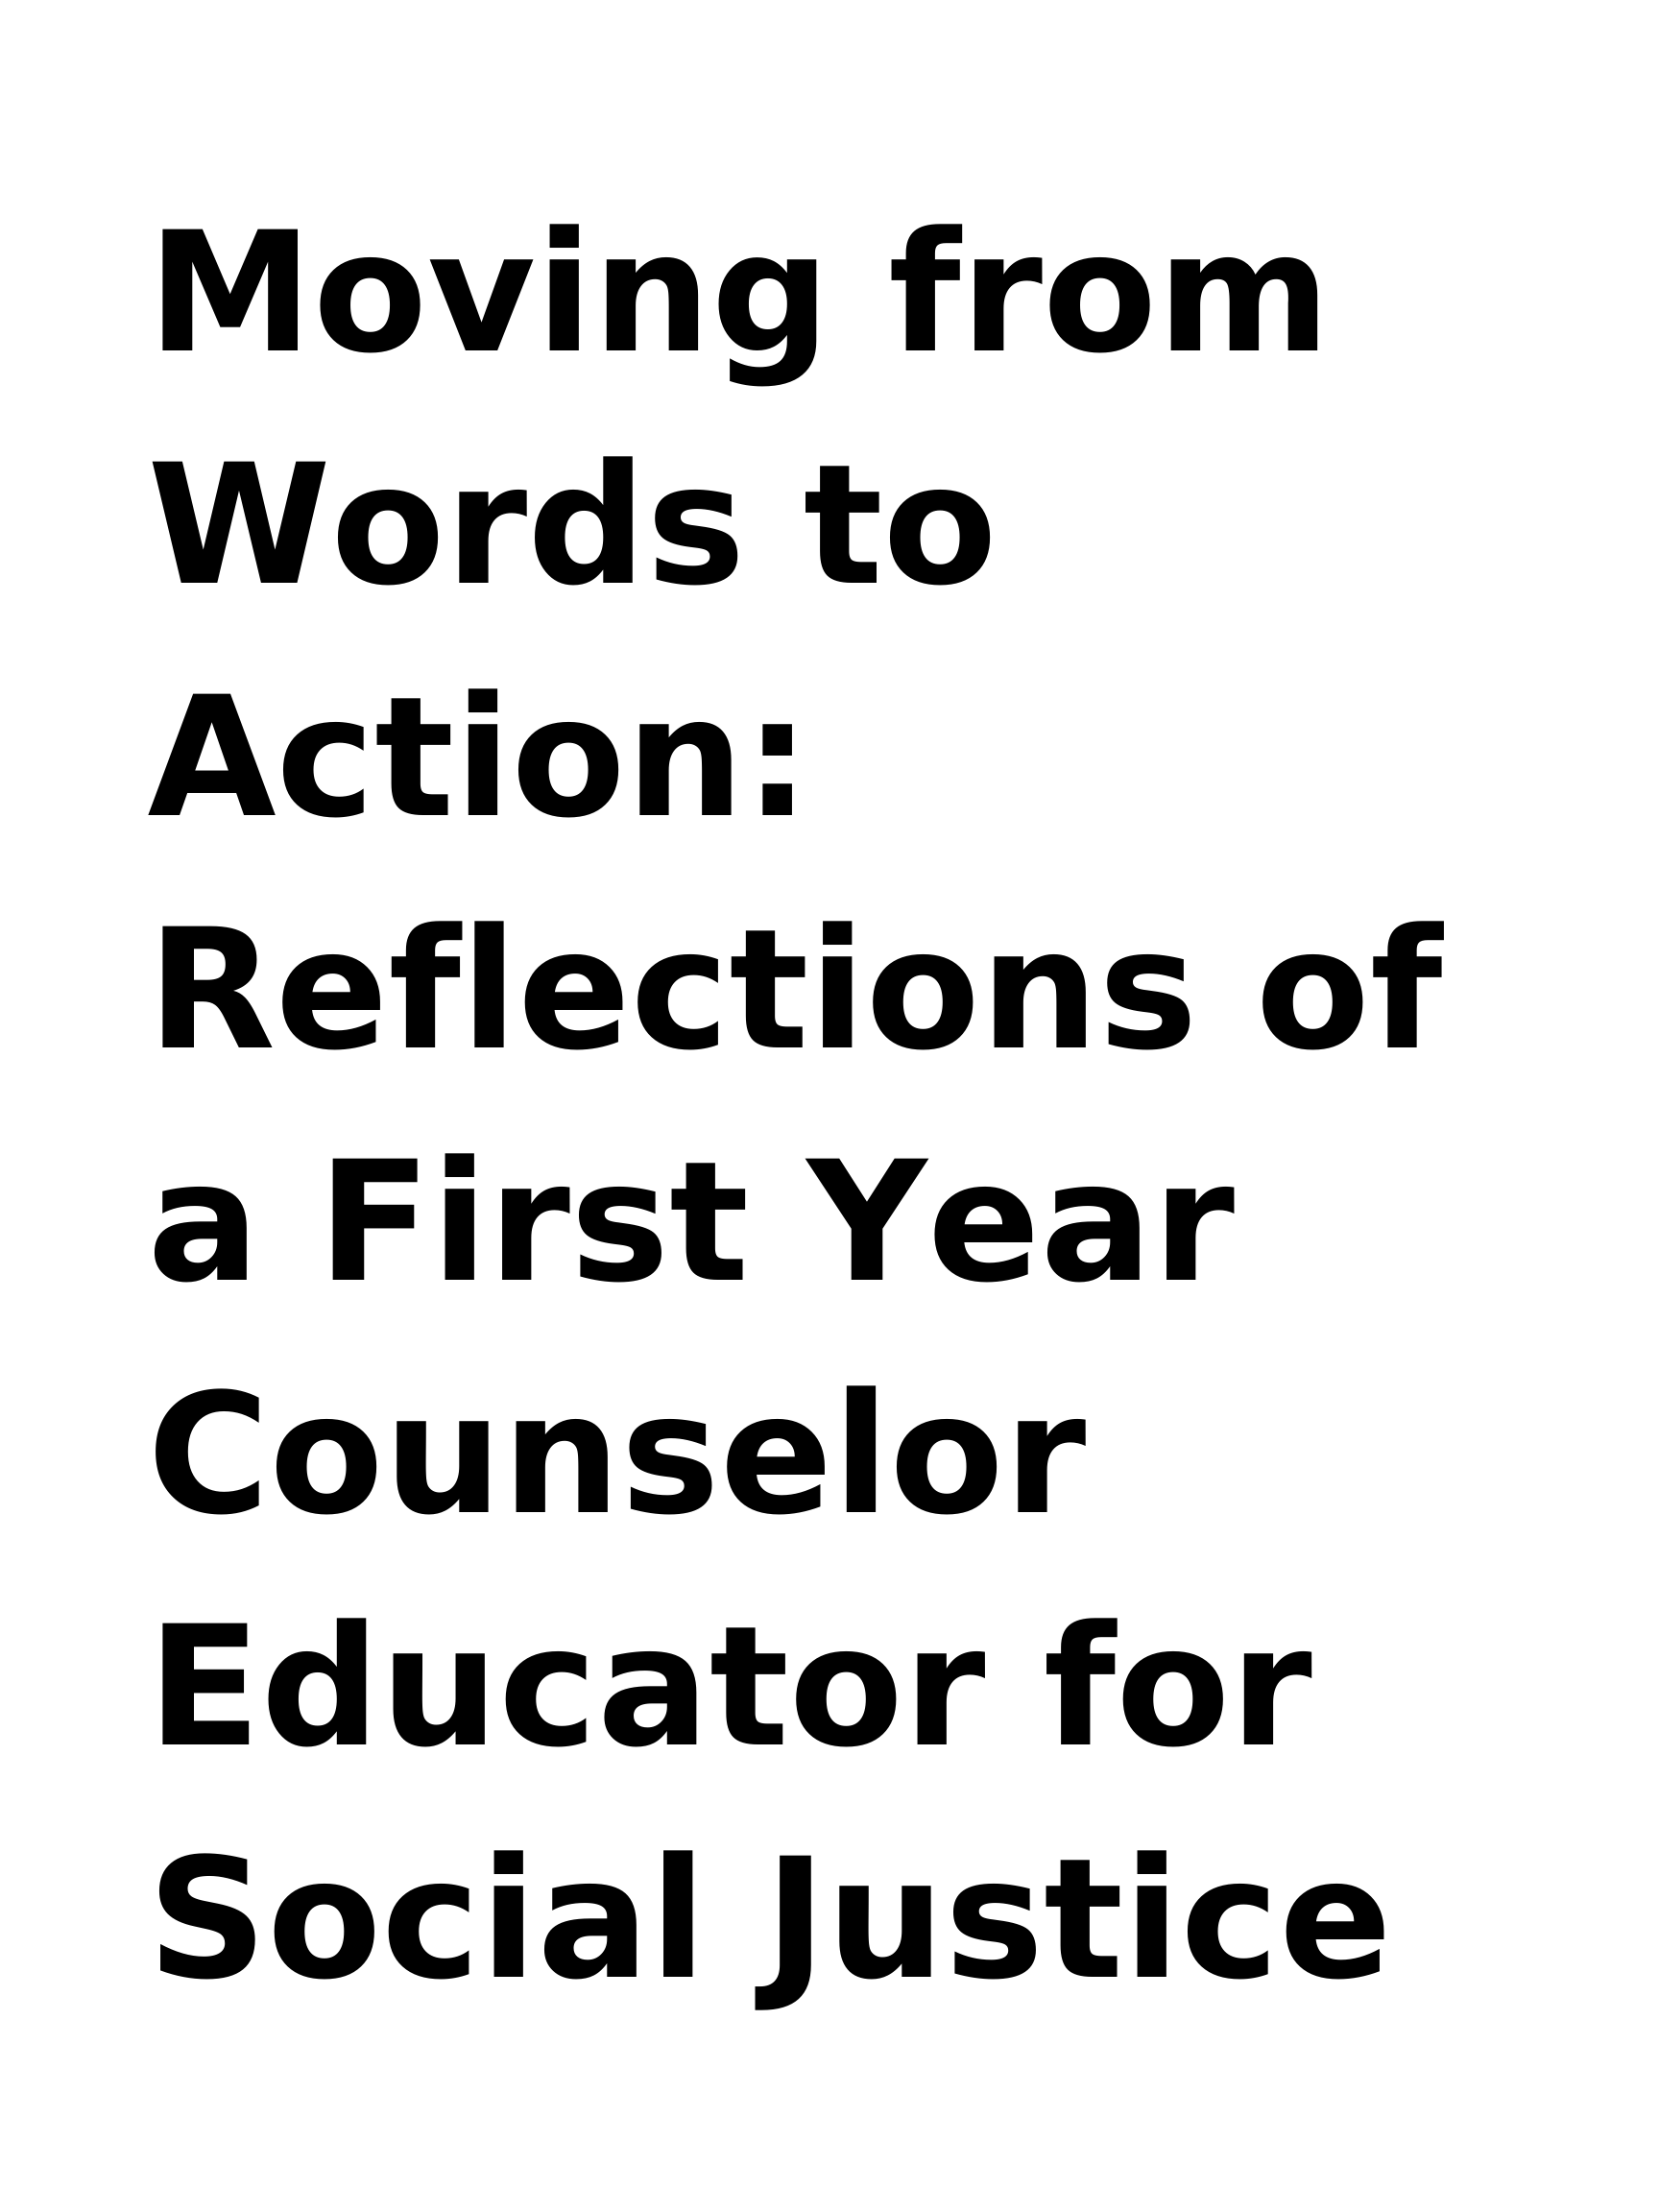 Moving from Words to Action_ Reflections of a First Year Counselor Educator for Social Justice